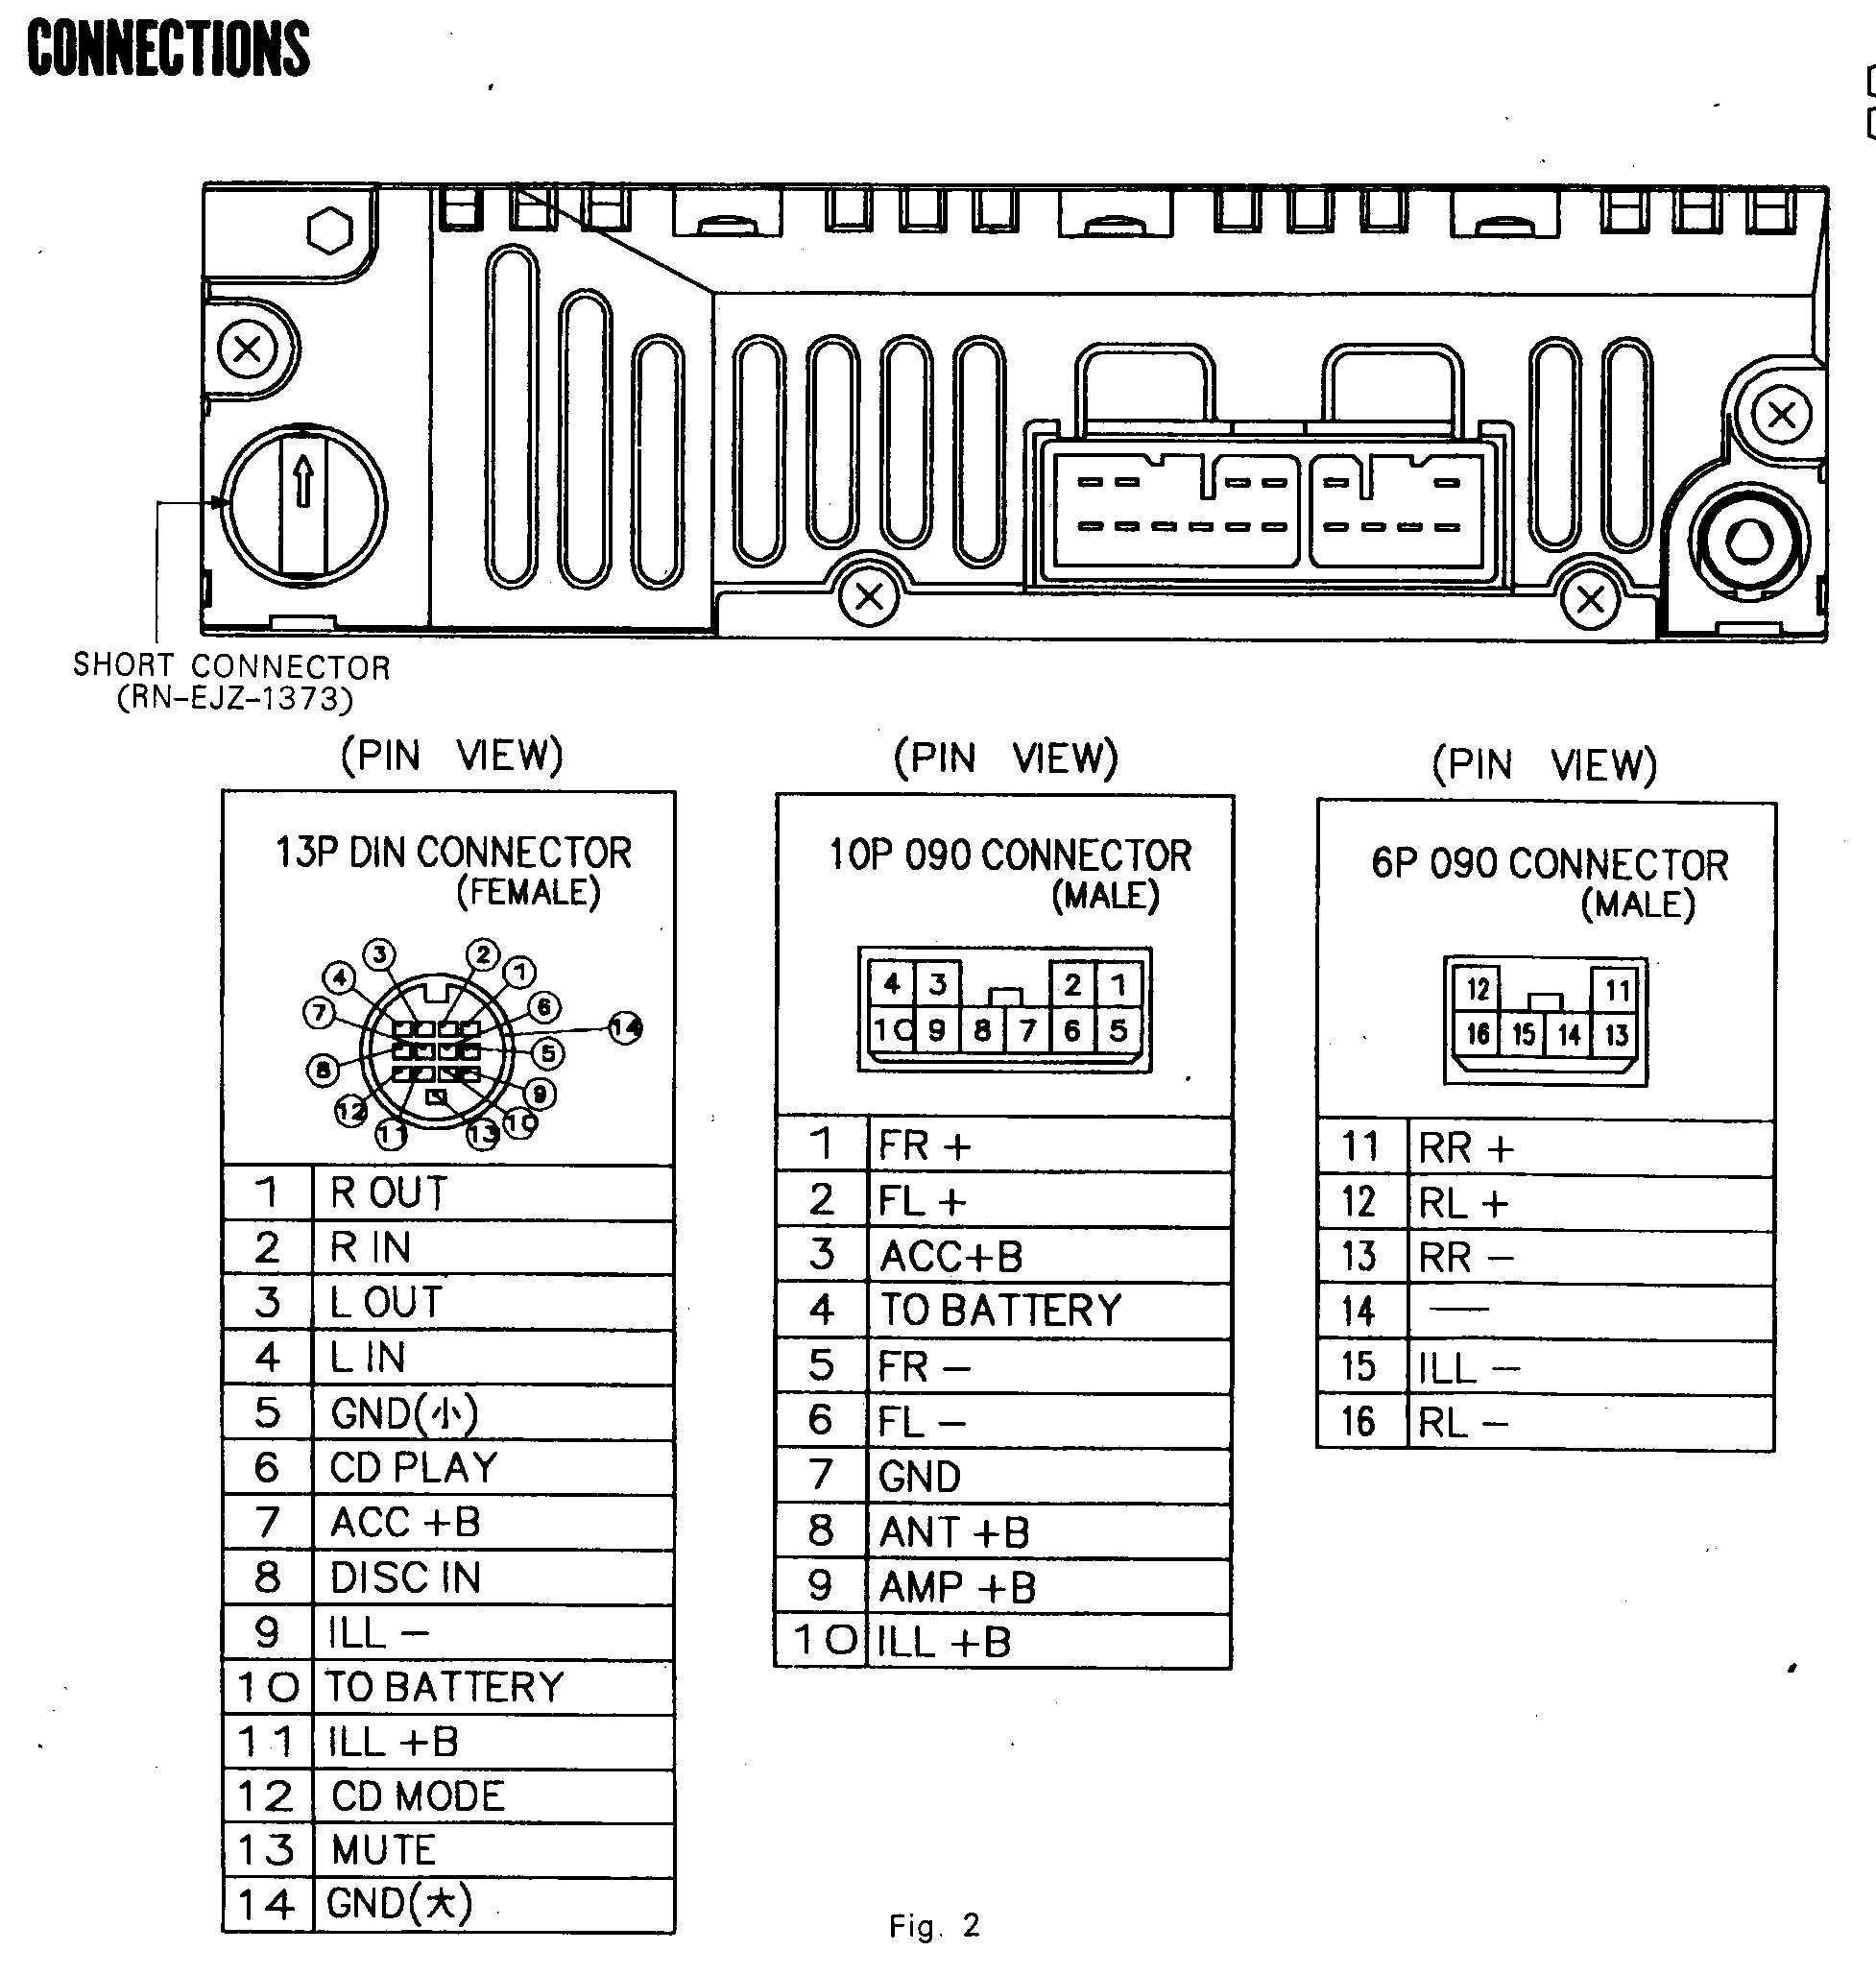 hight resolution of wiring 86120 toyota diagram tundra 0c130 schematic diagram database toyota 86120 0c130 wiring diagram wiring diagram